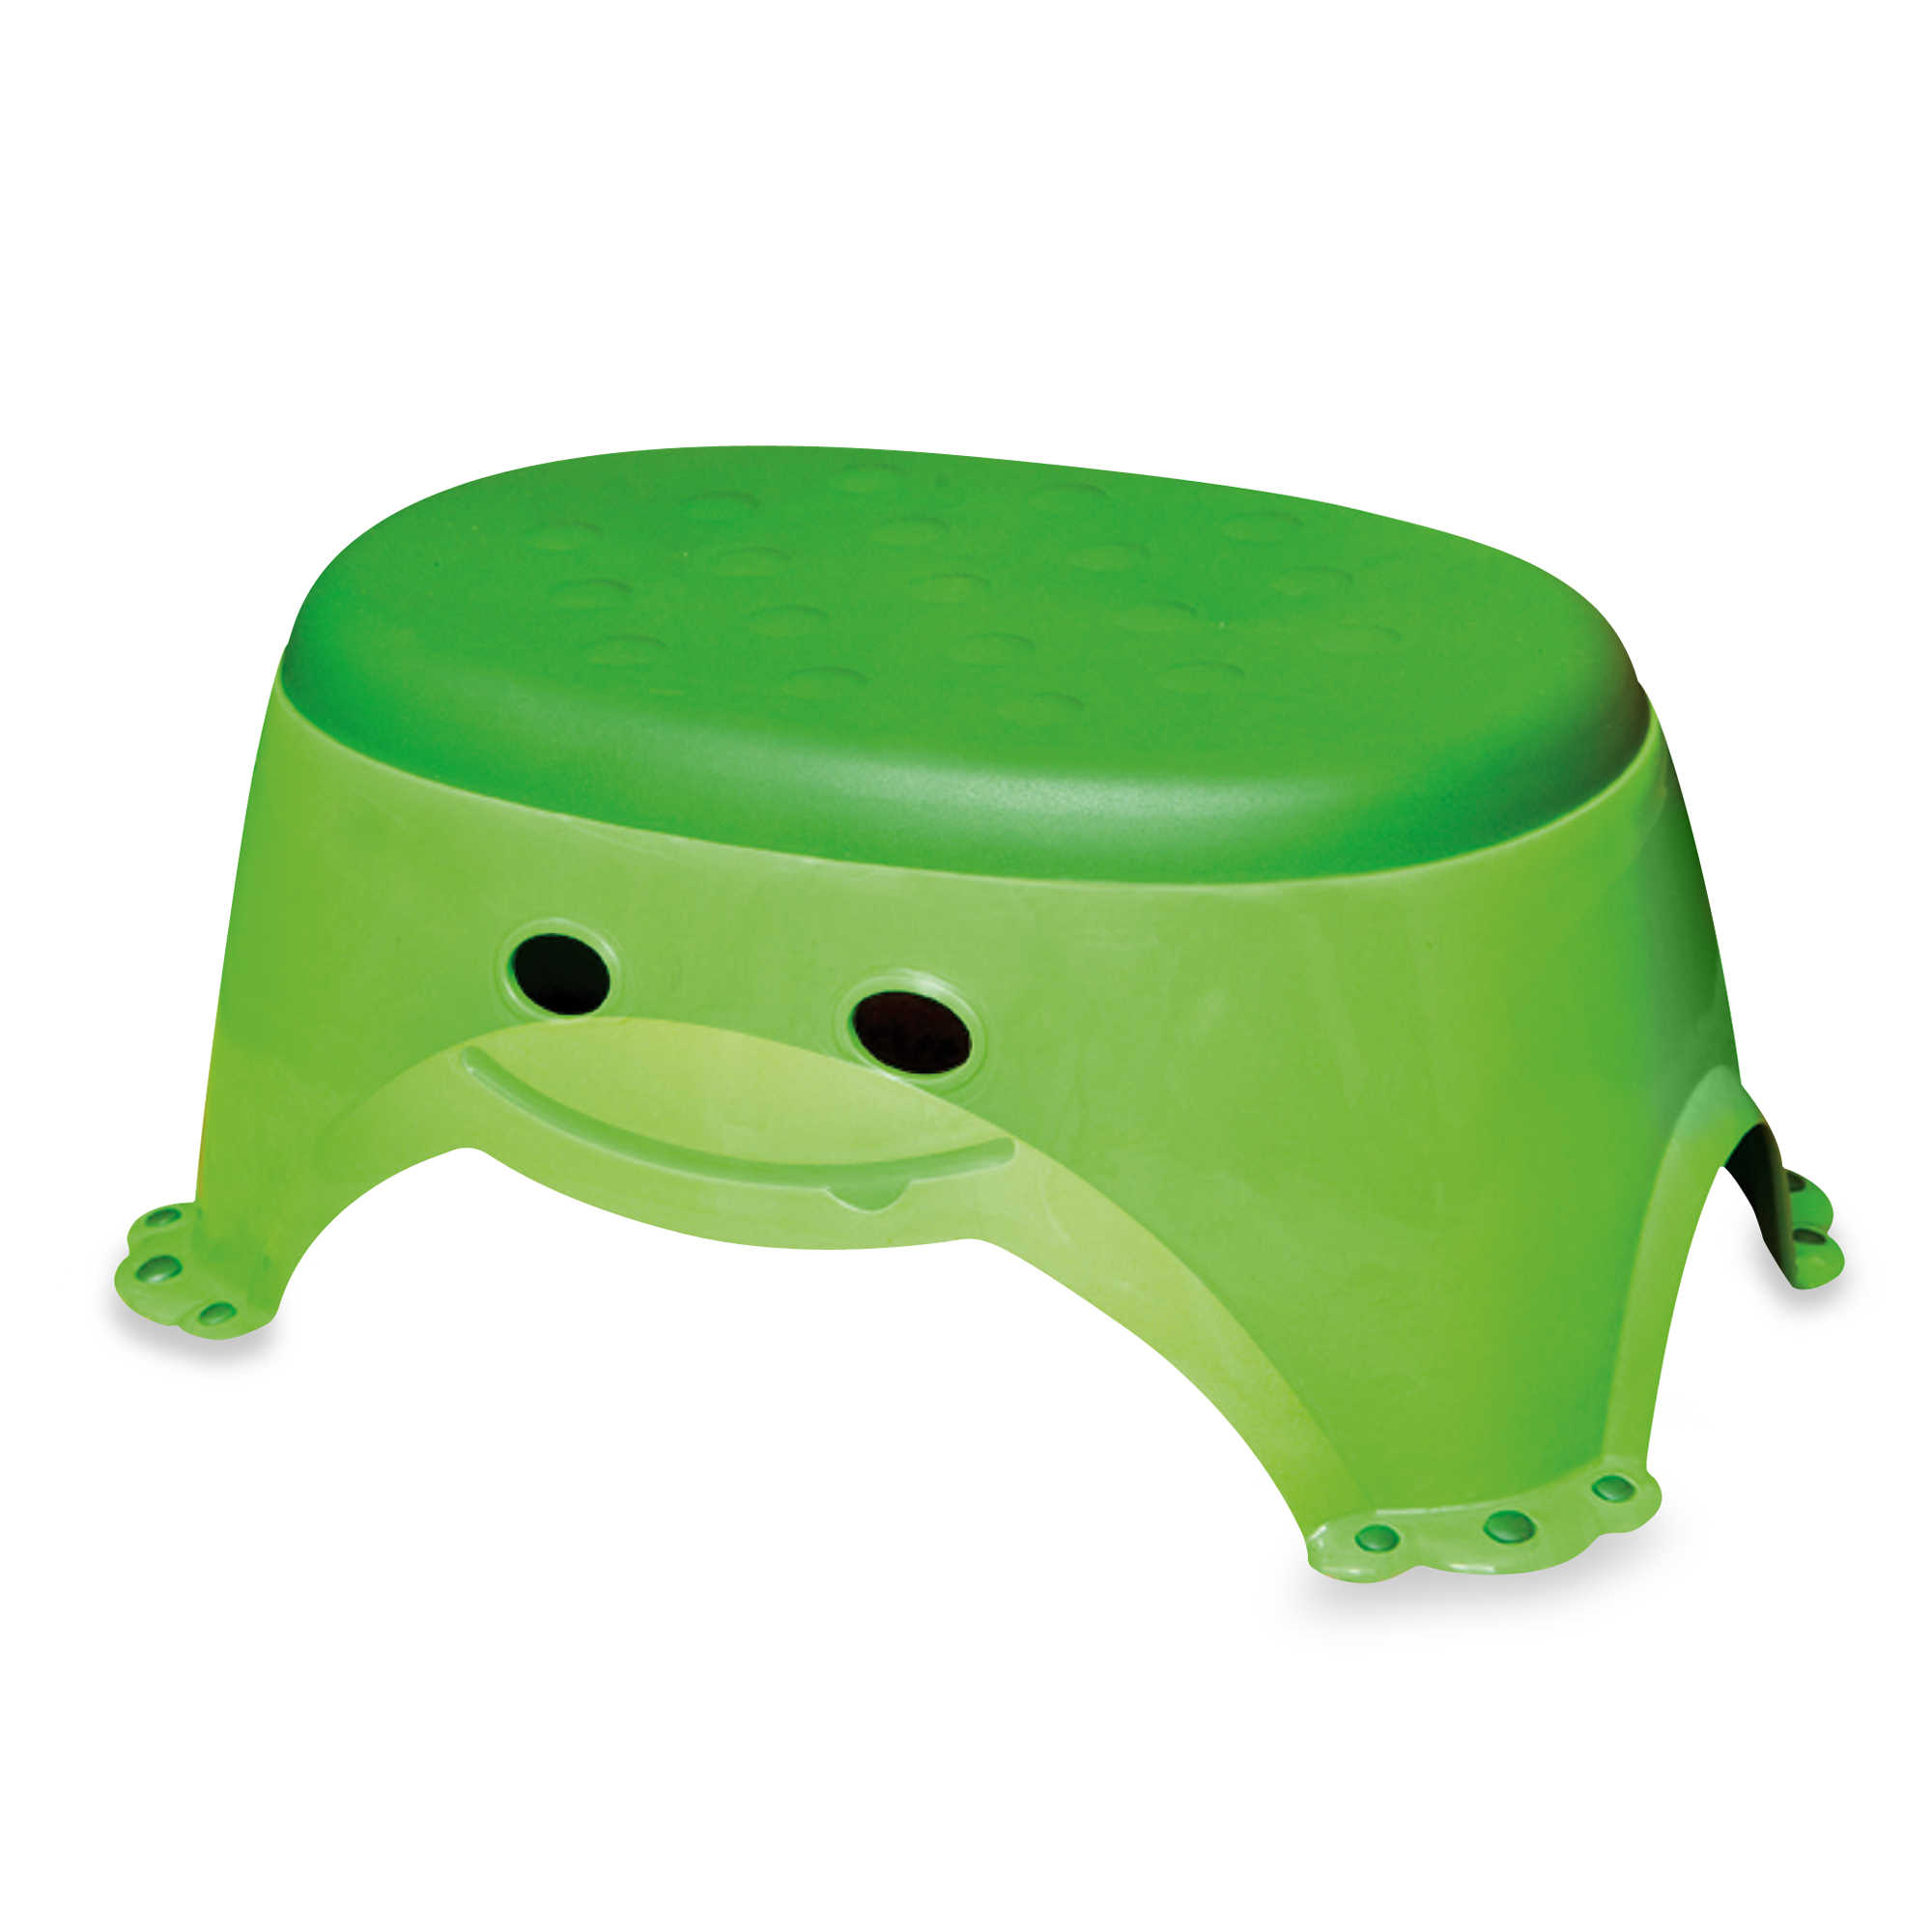 10 Best Kids Step Stools In 2017 Safe Step Stools For Kids And Toddlers